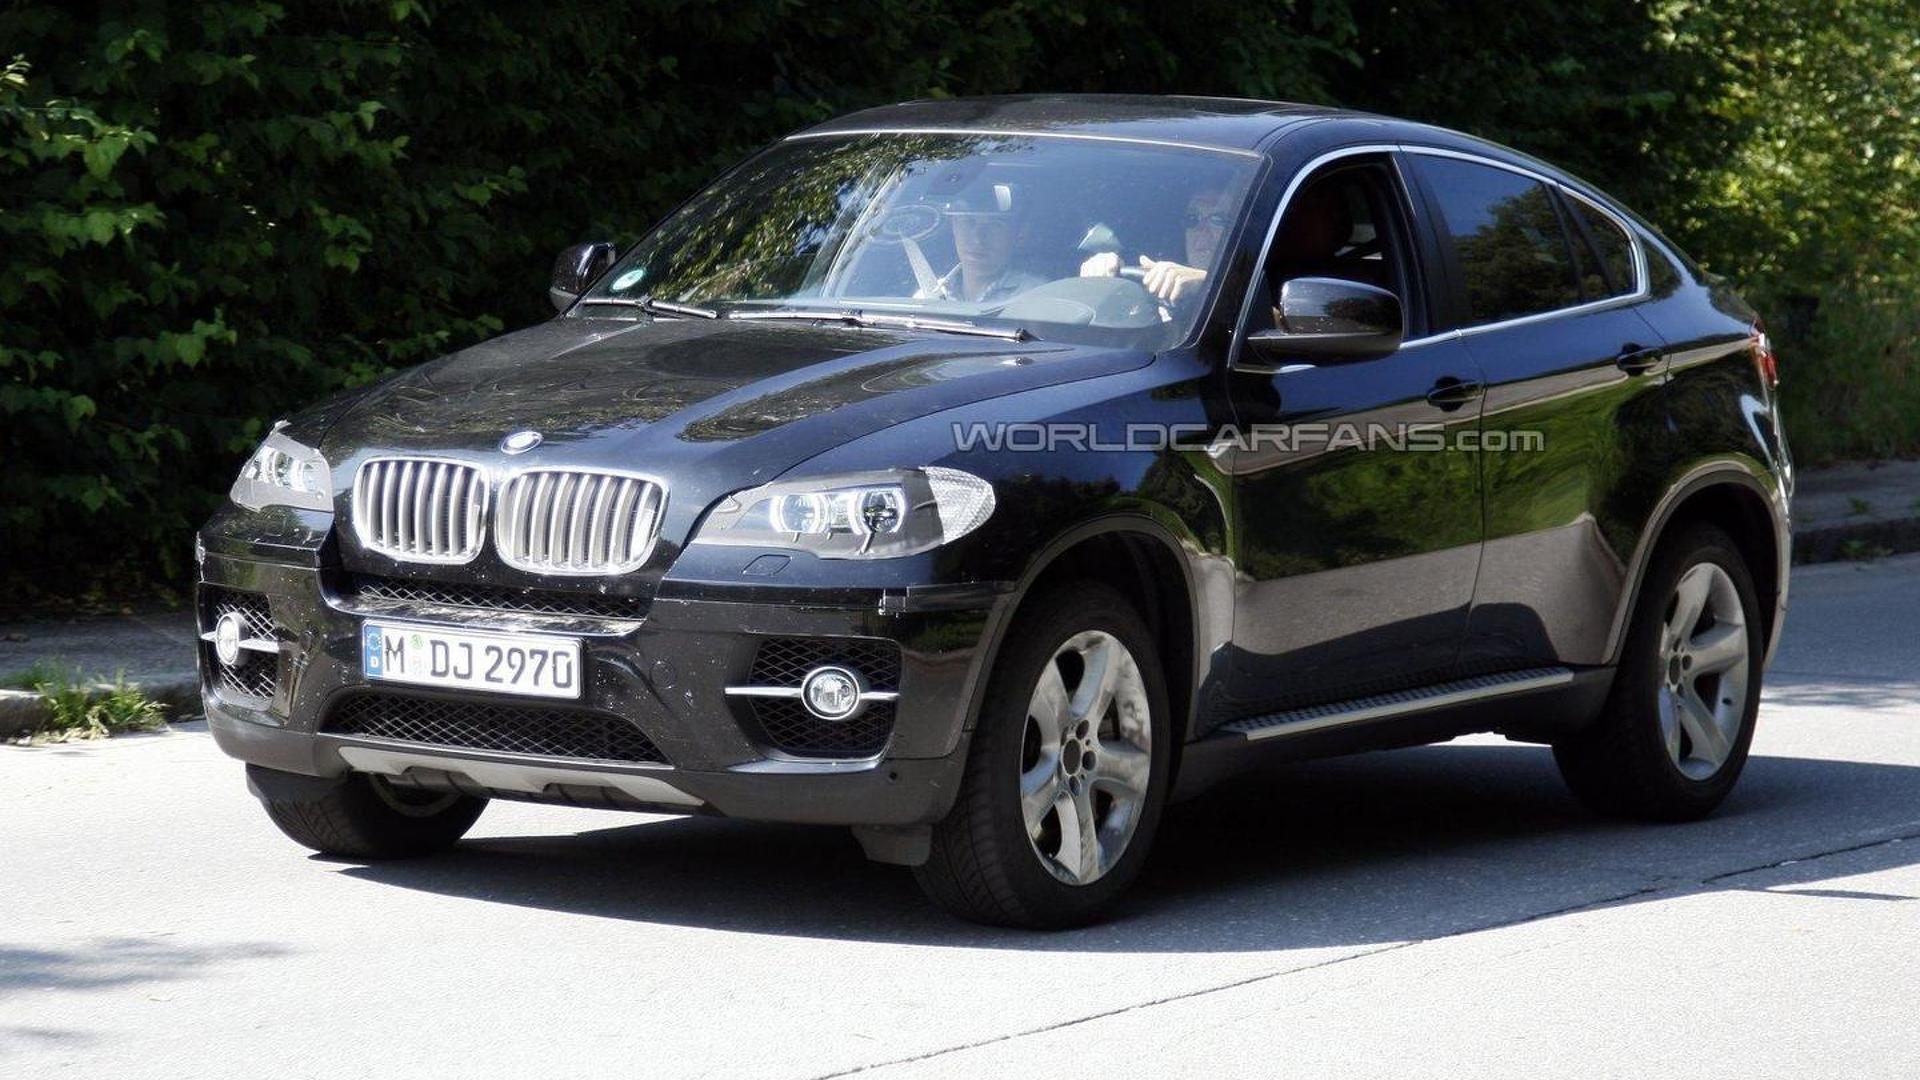 2012 BMW X6 facelift shows its new 'angel eyes'